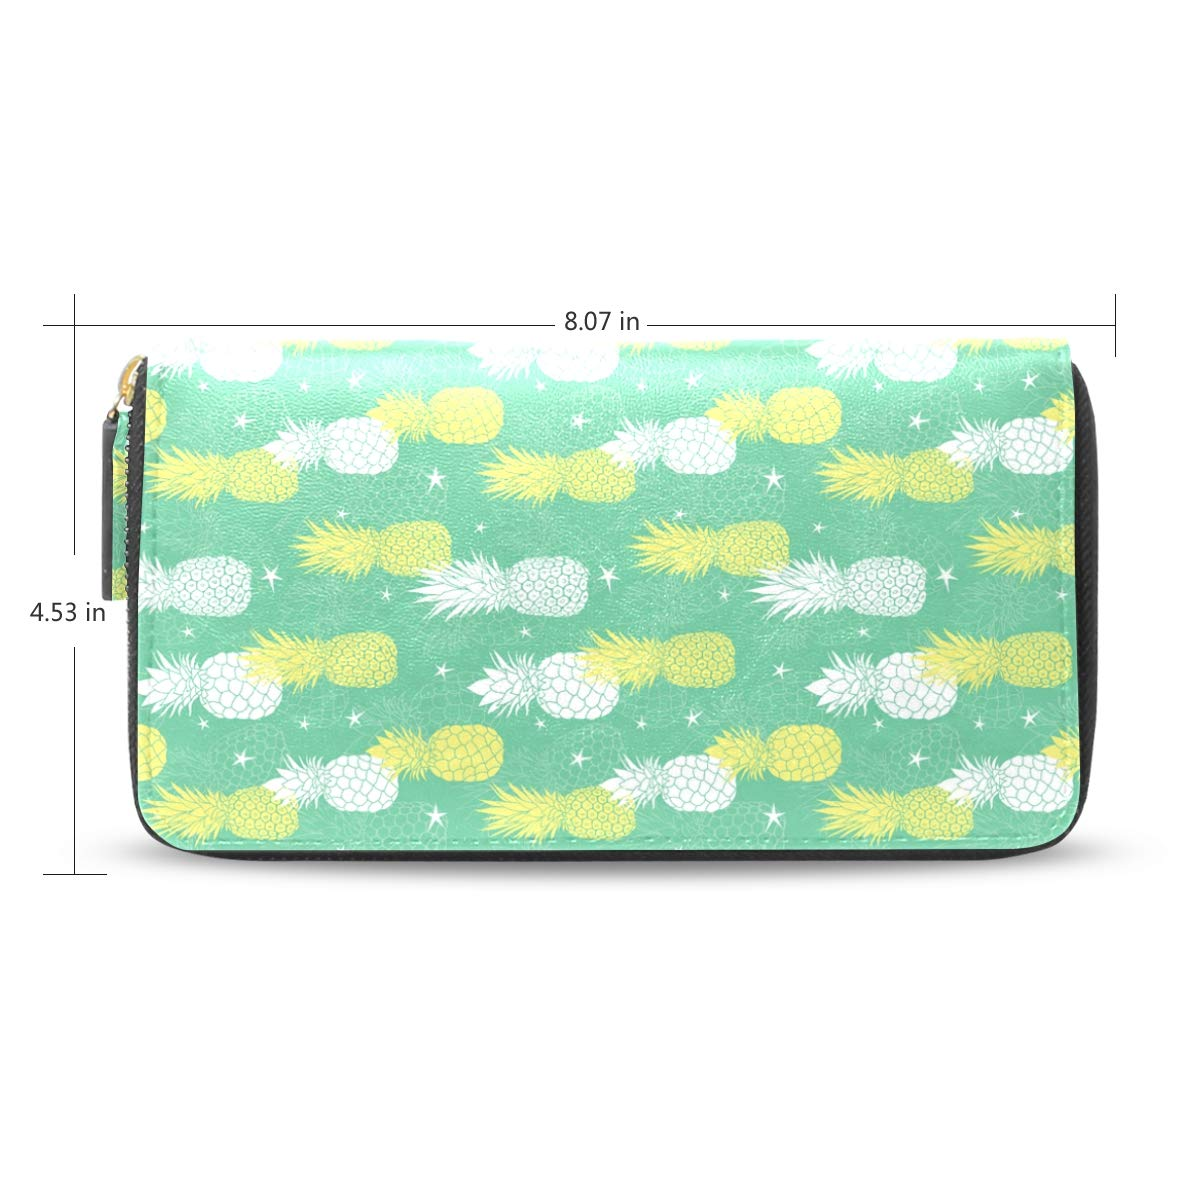 Women LeatherMint Green And Yellow Pineapples StarsWallet Large Capacity Zipper Travel Wristlet Bags Clutch Cellphone Bag